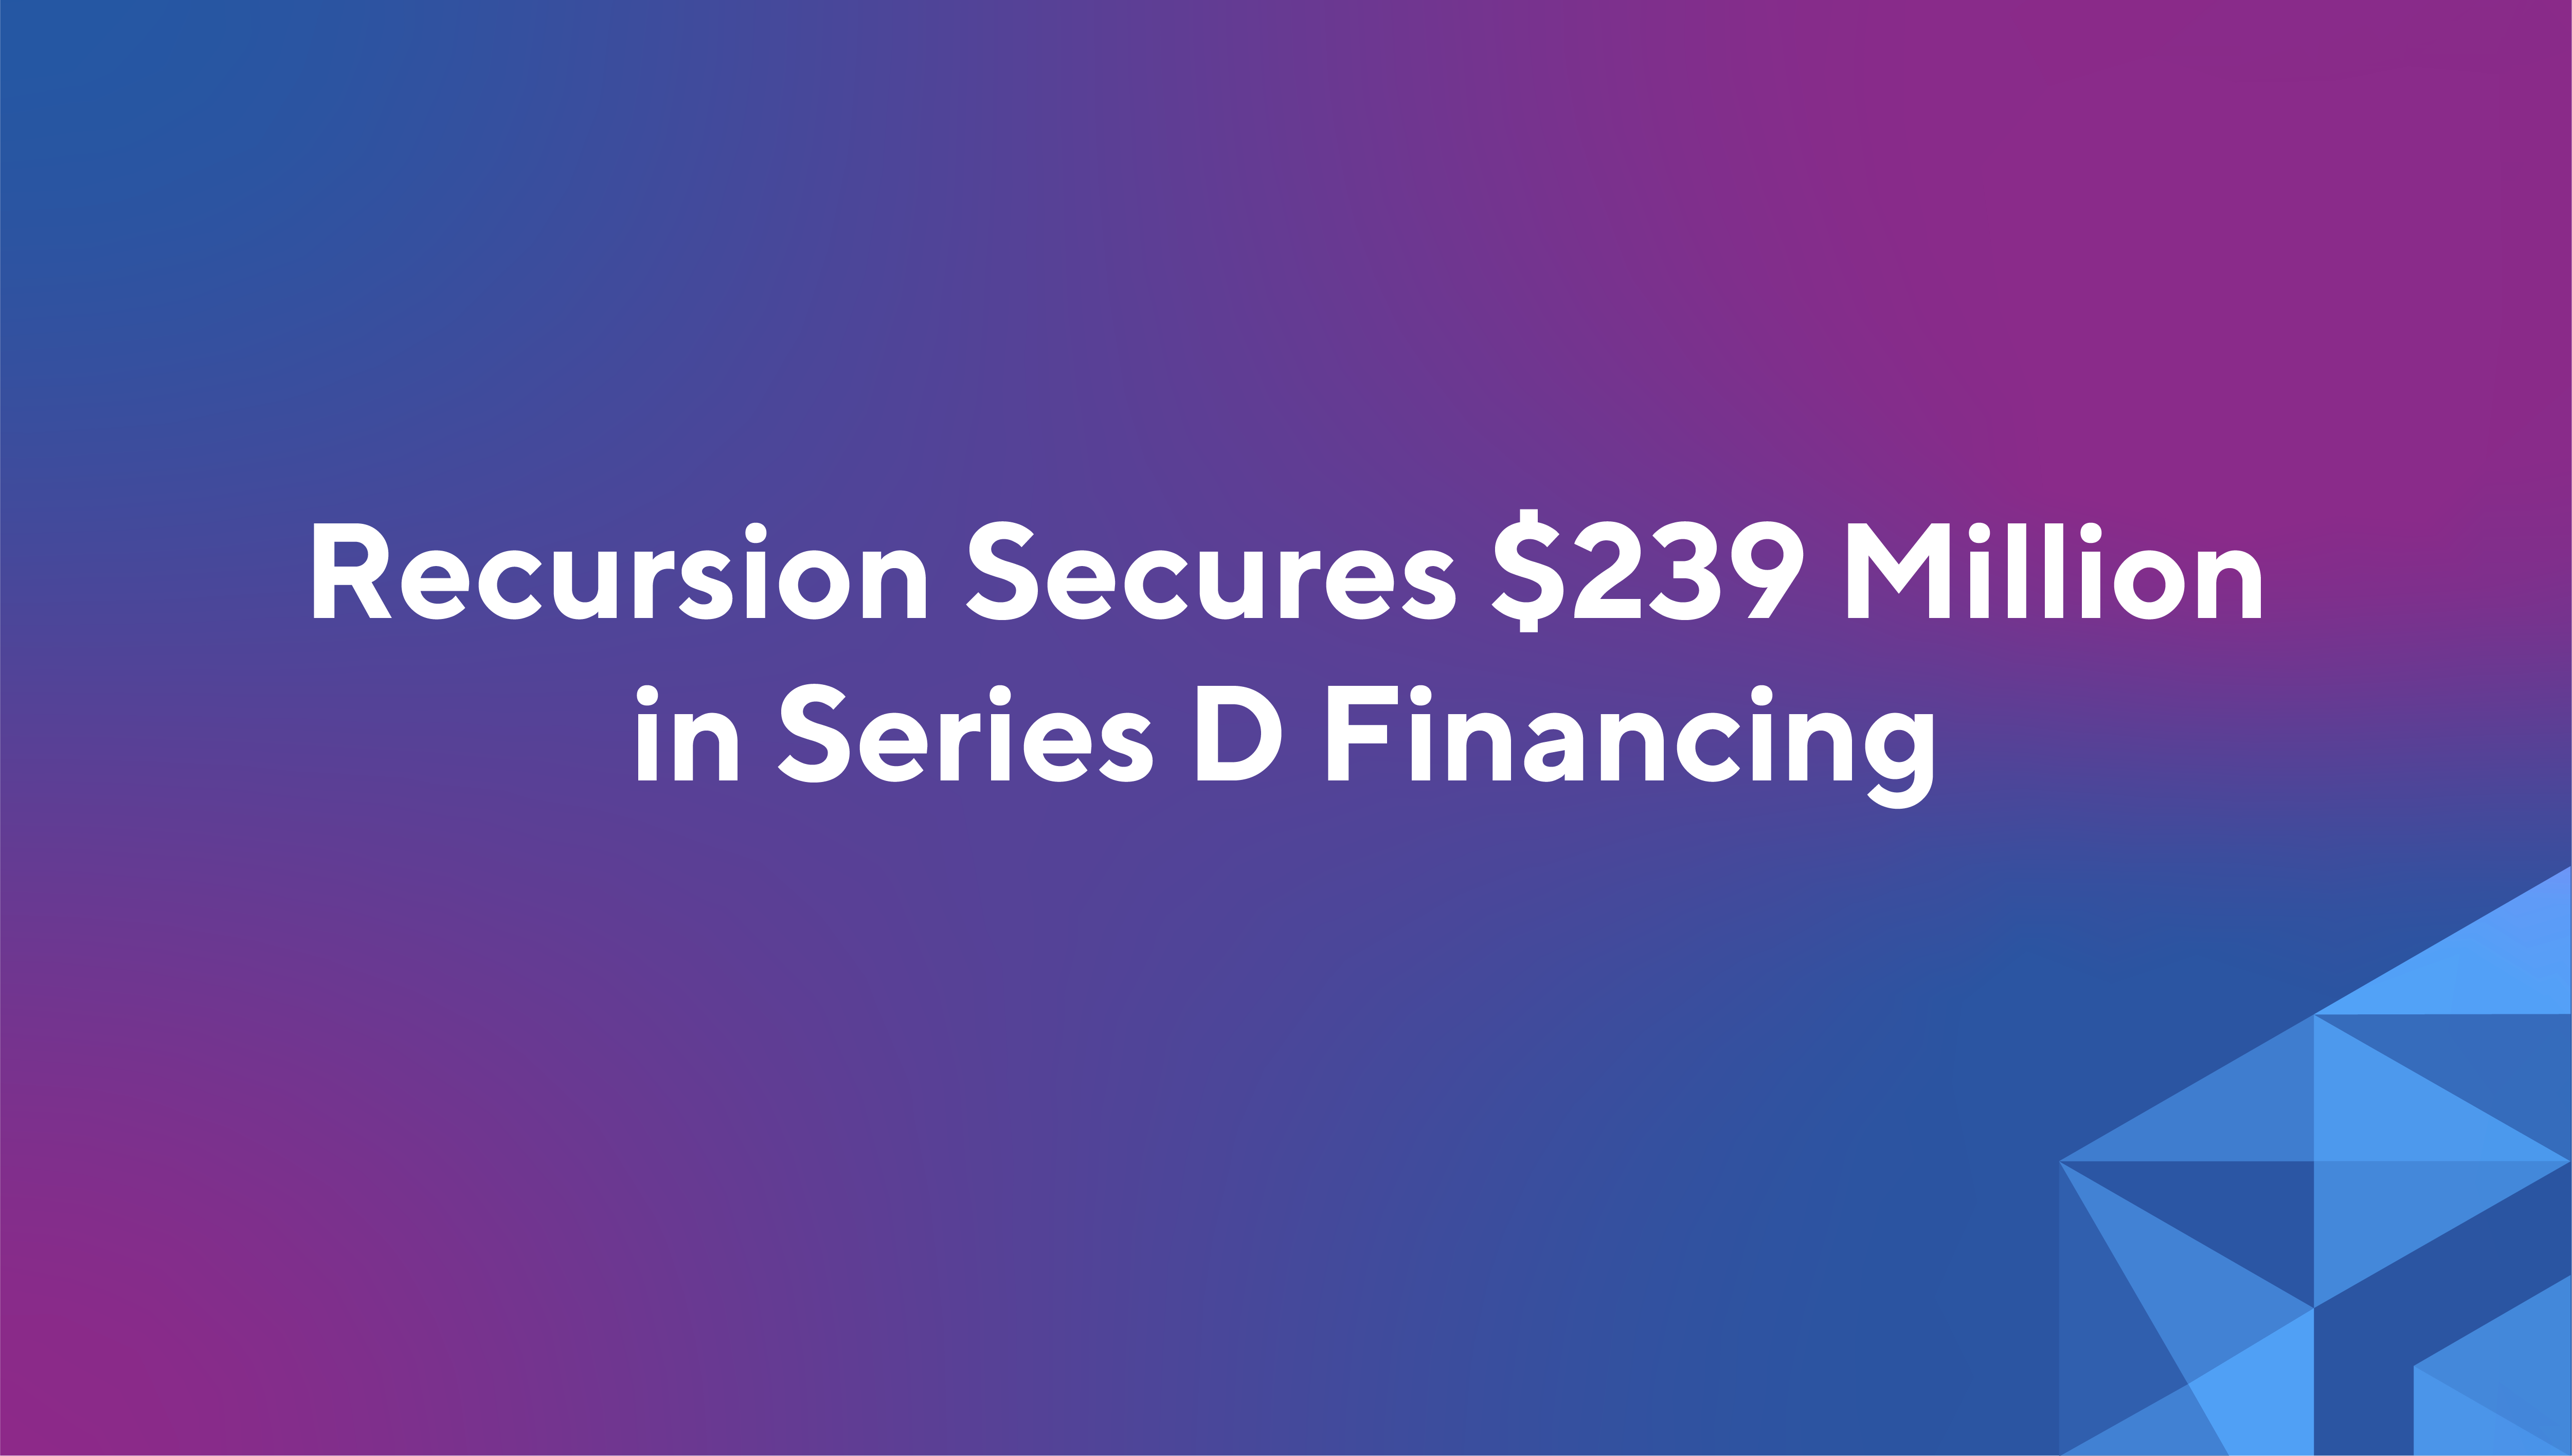 Recursion Secures $239 Million in Equity Financing to Advance Technology-Enabled Drug Discovery Platform and Pipeline